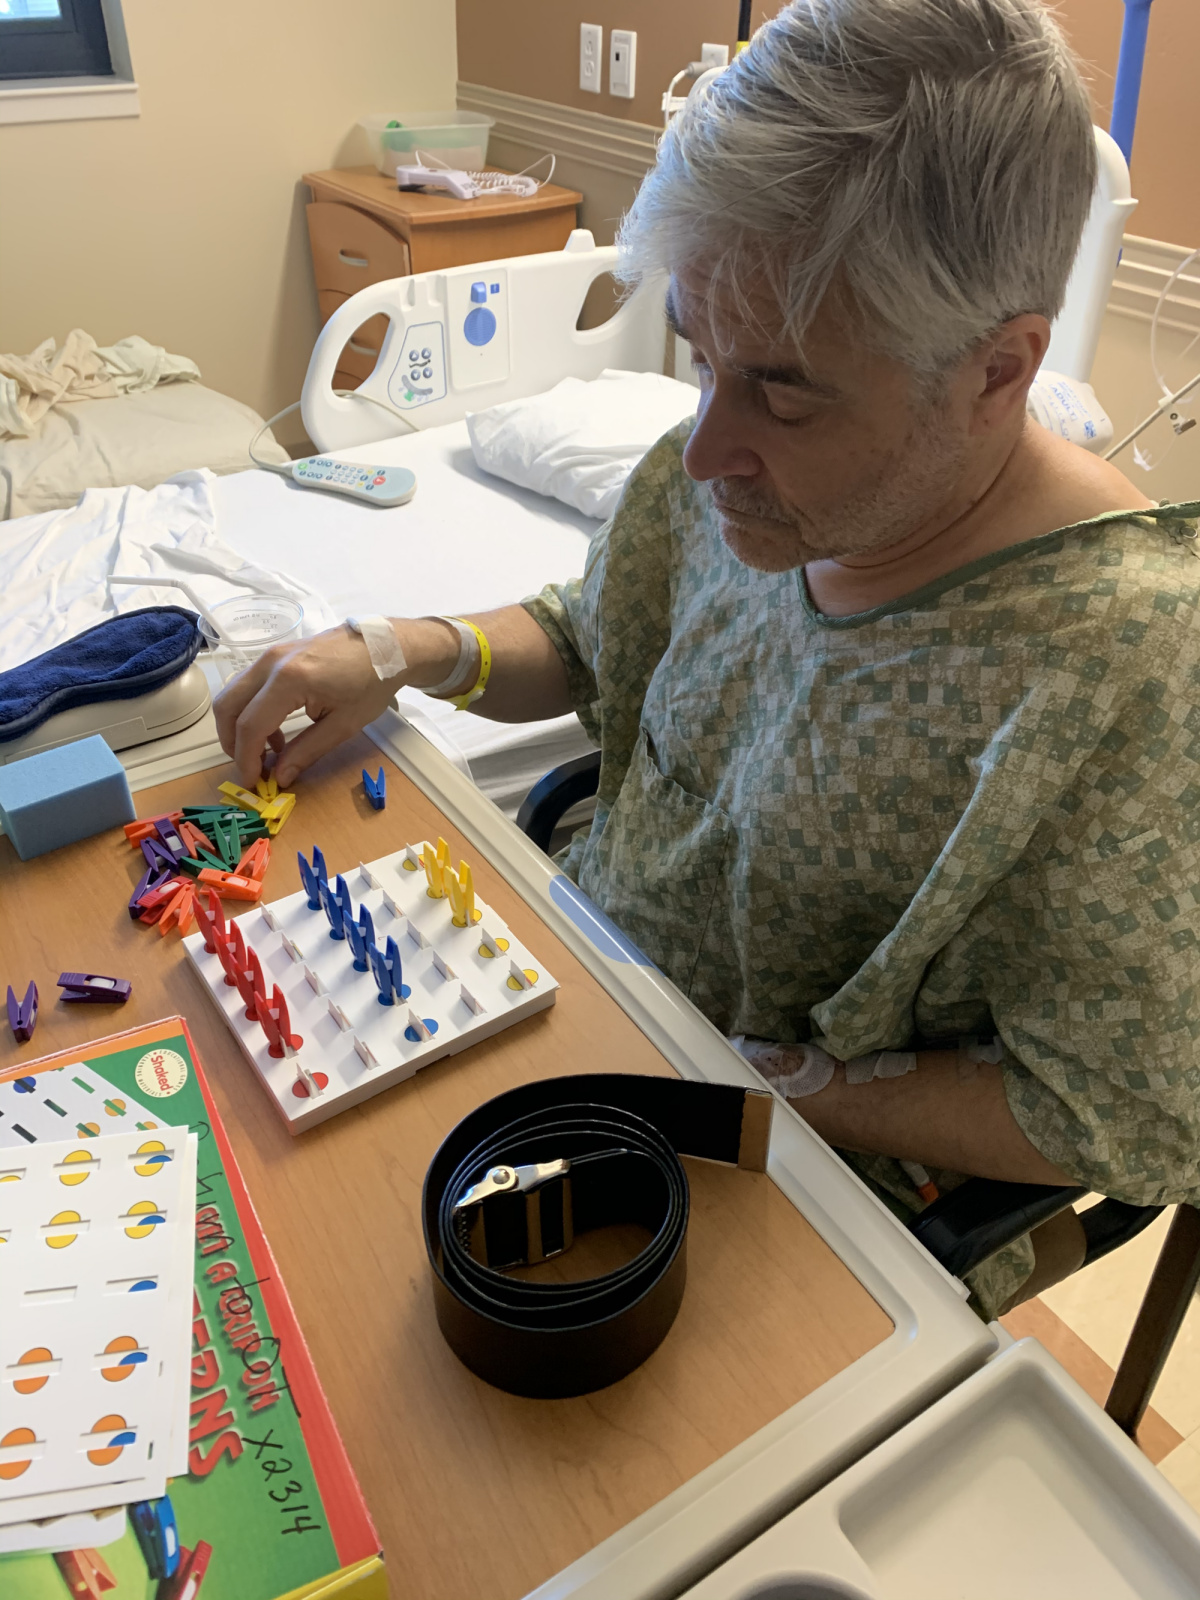 His OT says to put clips on corresponding colors. The left row is empty because he doesn't see that row. When he's finished, she moves the board a little to his right and he is stunned that another row was there all that time. This helps him start learning strategies to compensate for the loss.